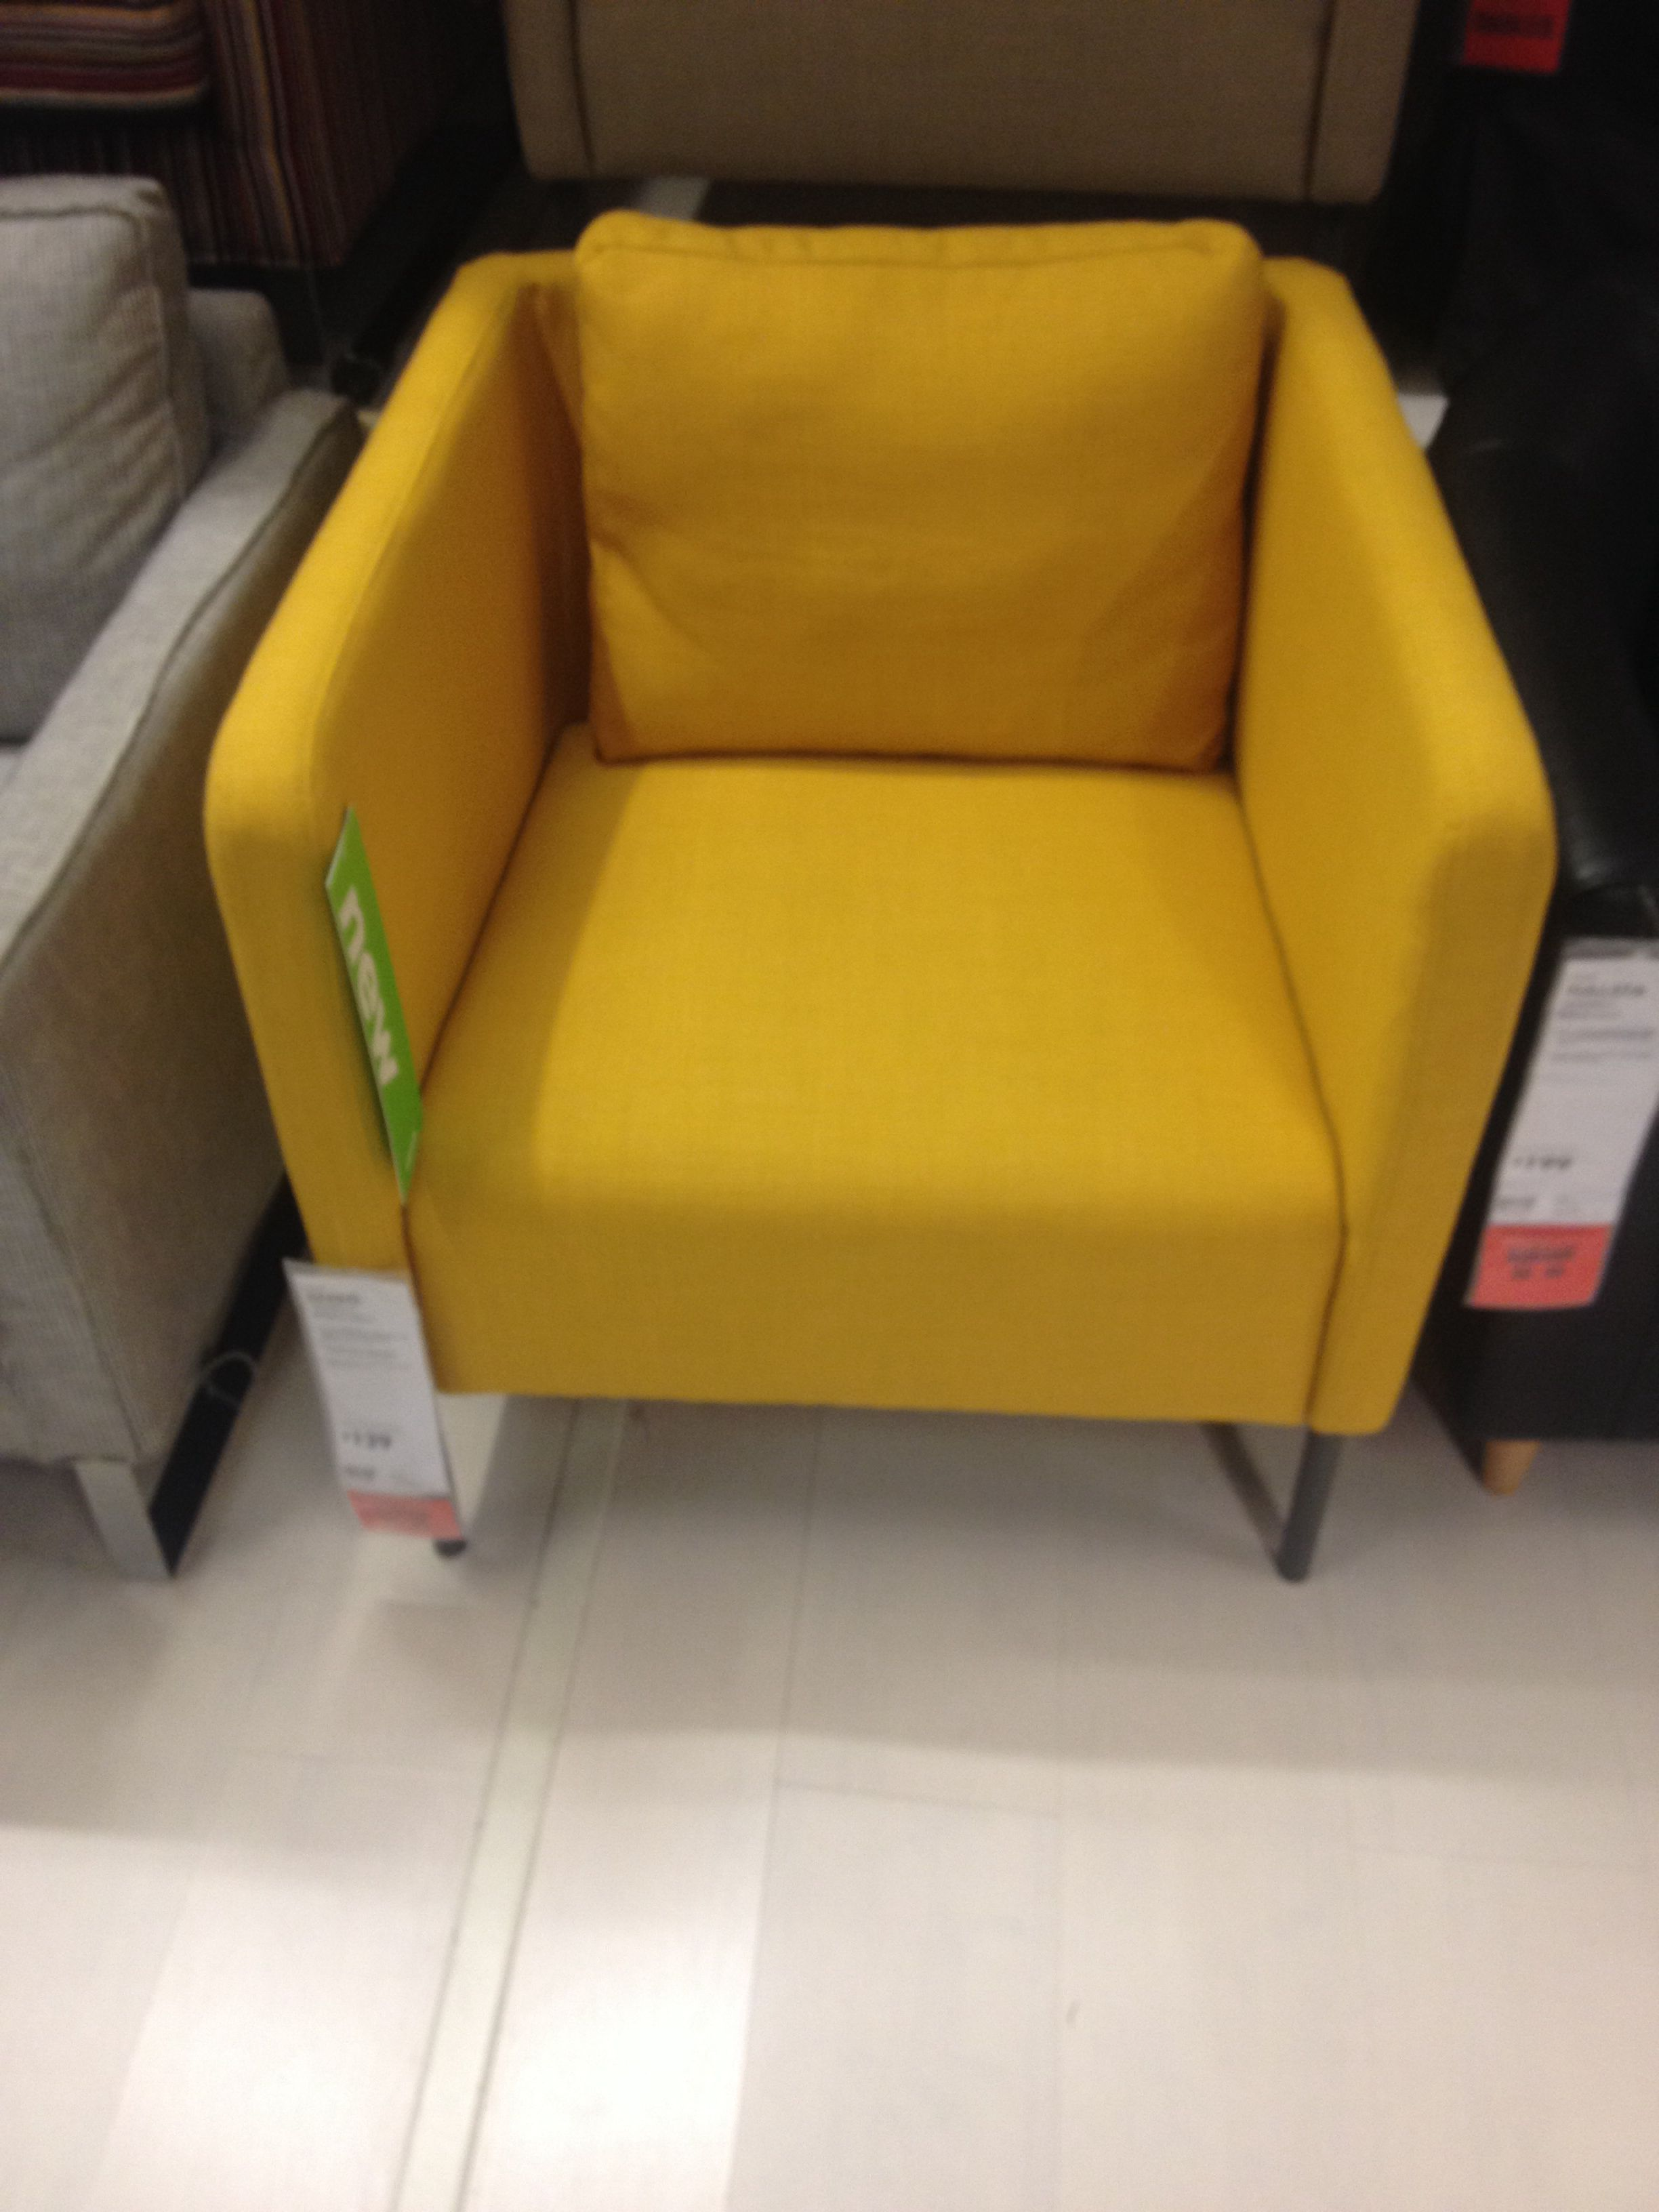 New ikea chair: love the mustard yellow and shape ...